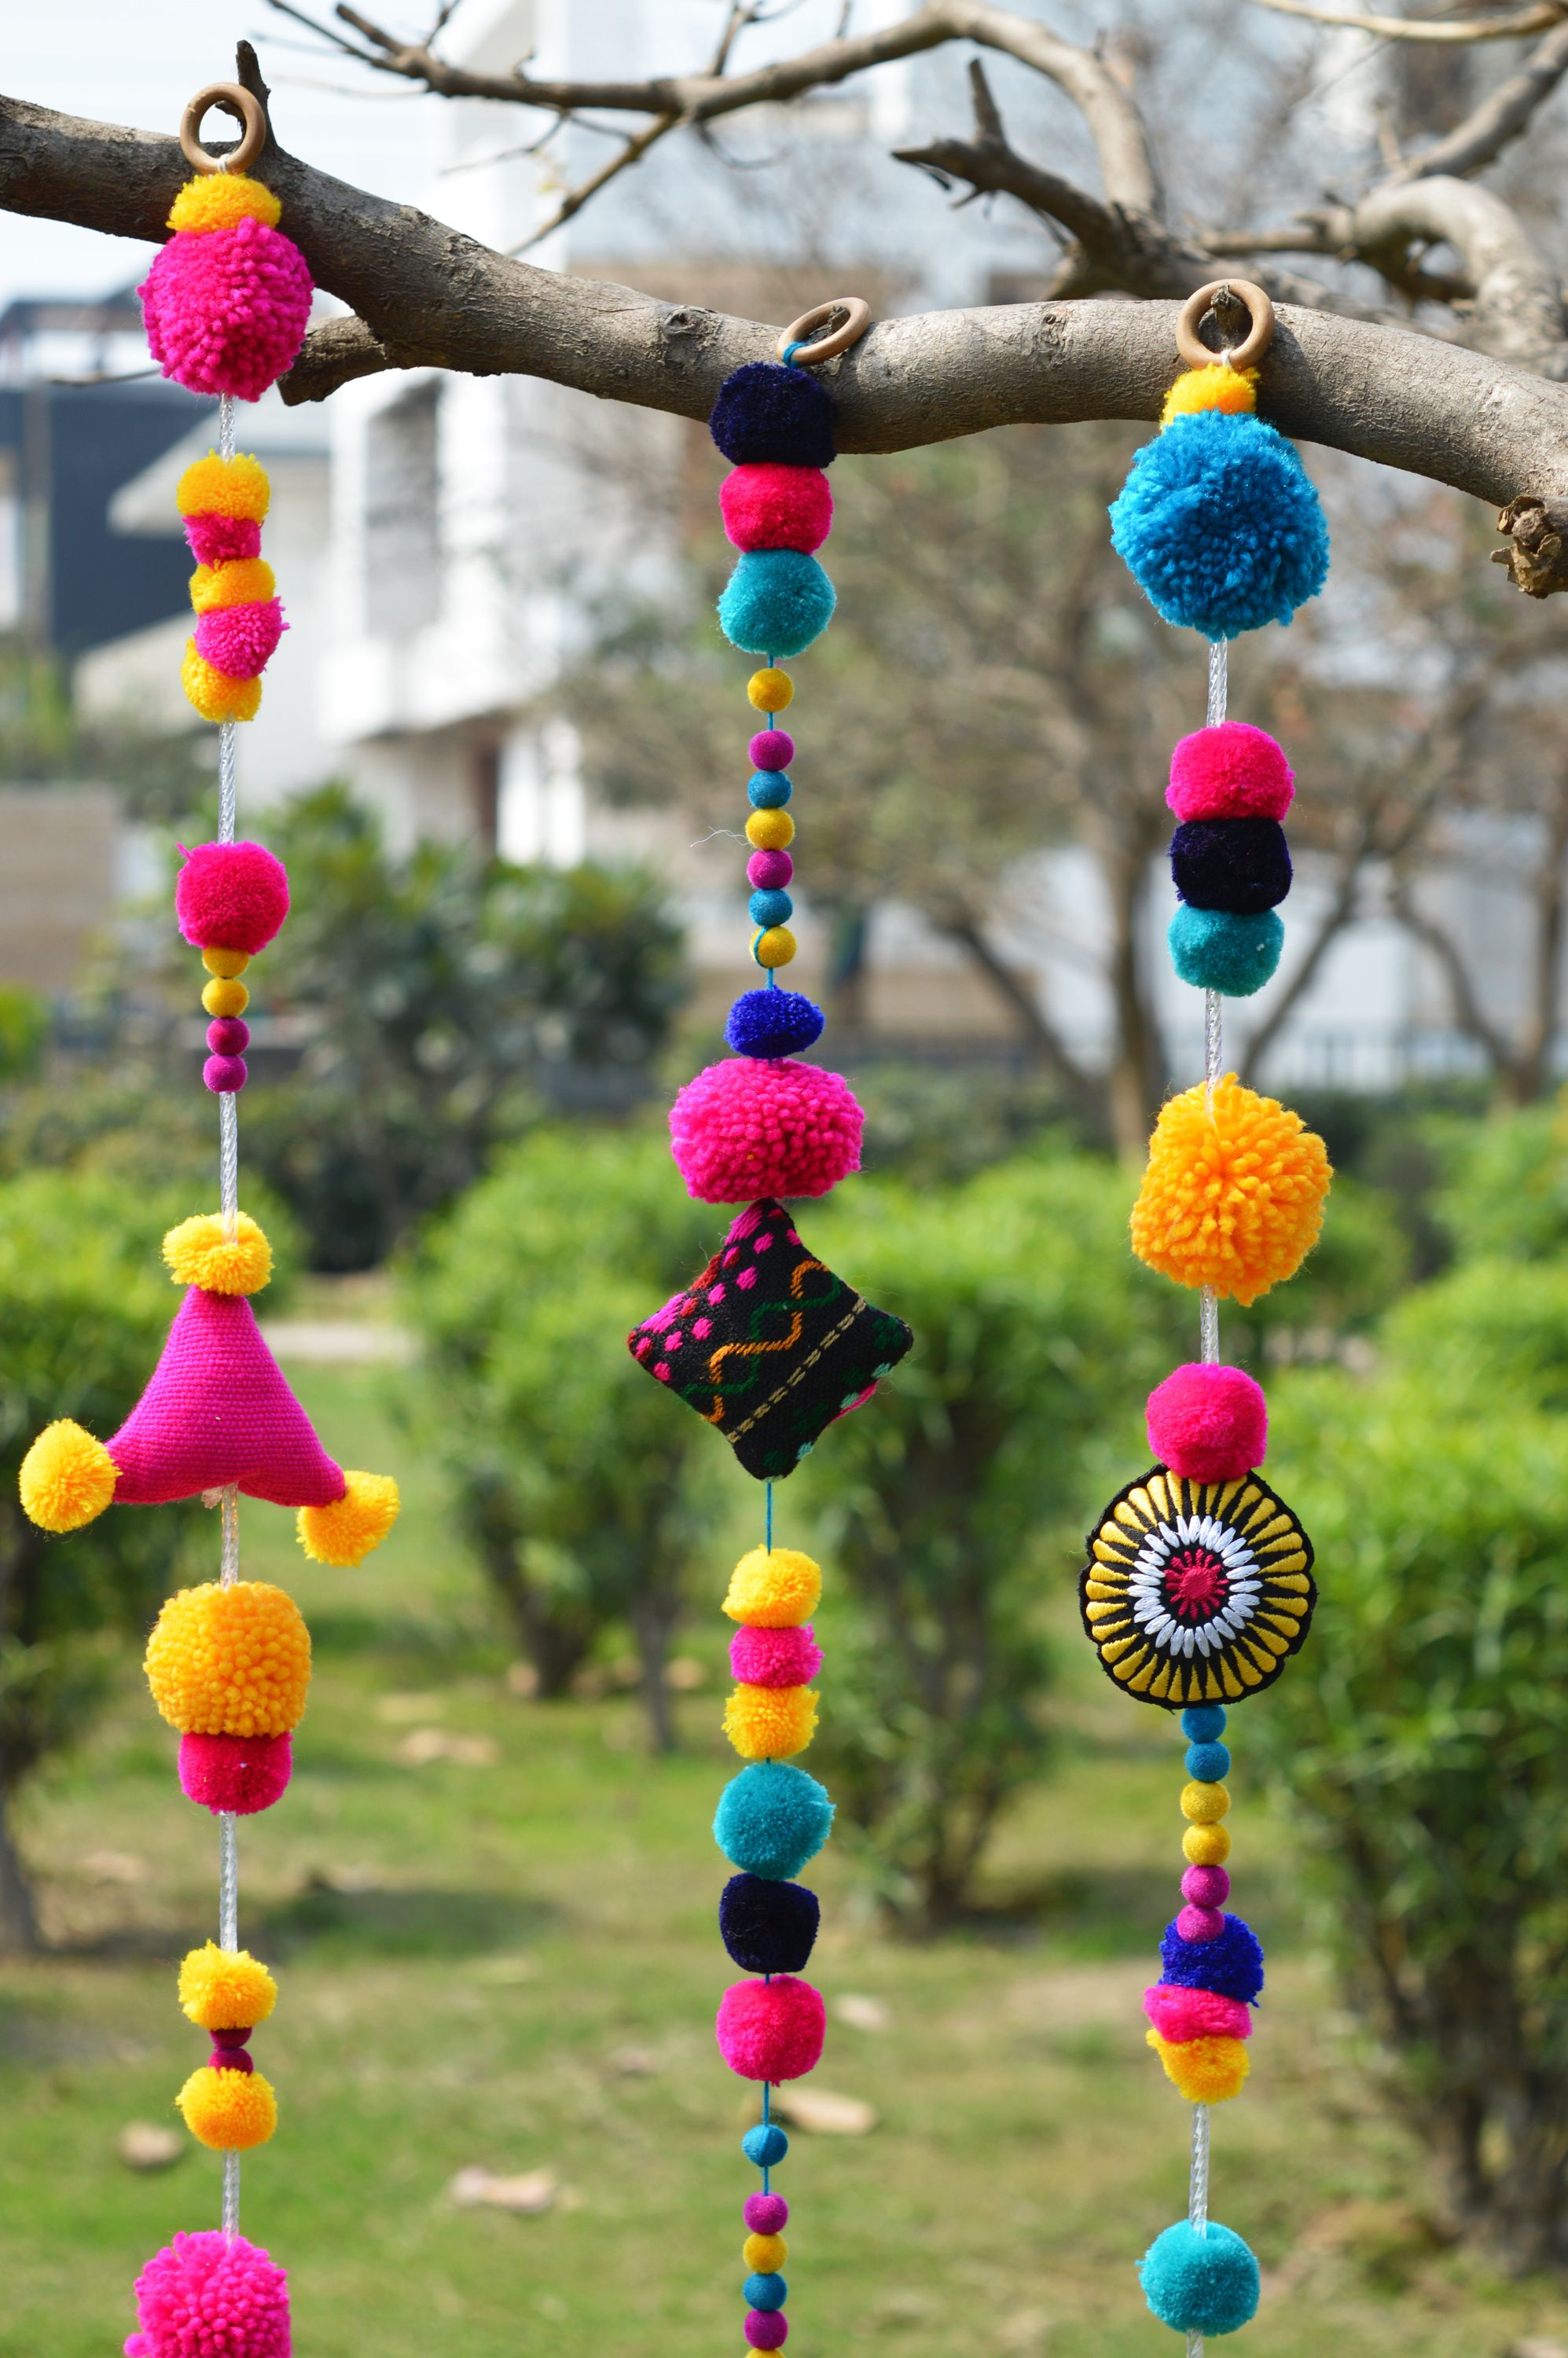 Quilling wedding decorations  Pin by Alekhya Vinjamuri on DIY projects to try  Pinterest